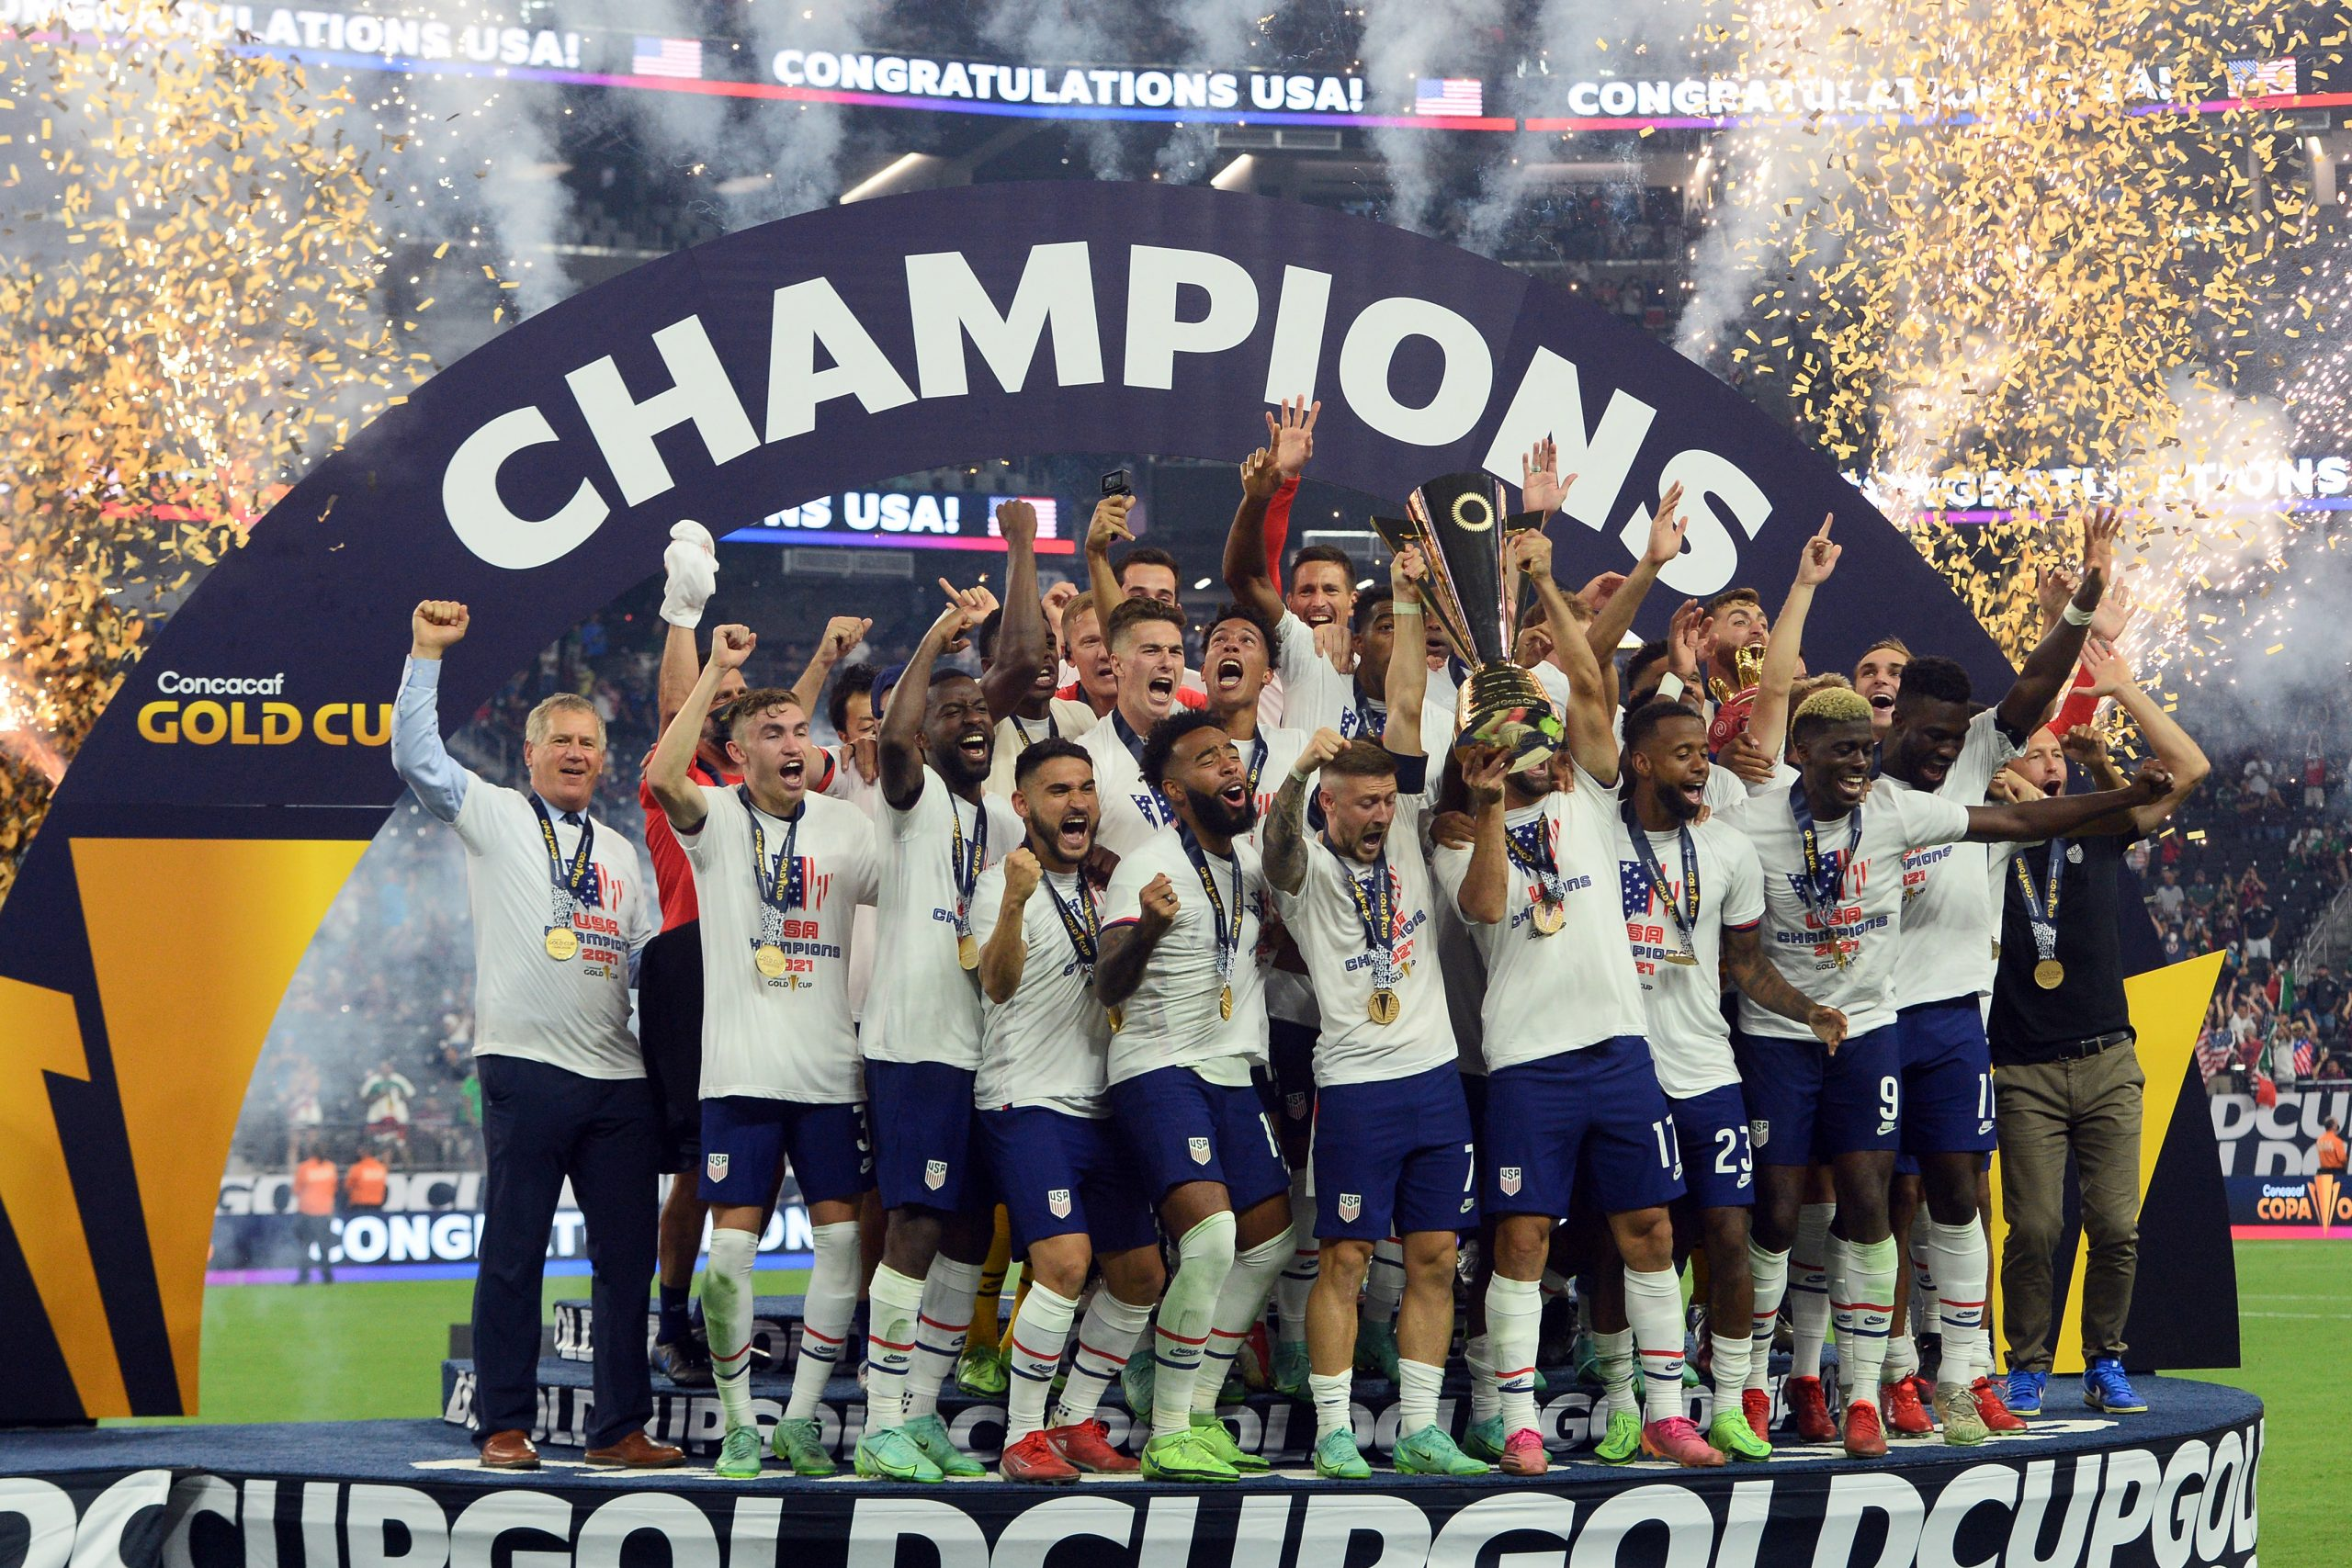 U.S. Men's Soccer Wins CONCACAF Gold Cup, USWNT Gold Medal Dreams Dashed